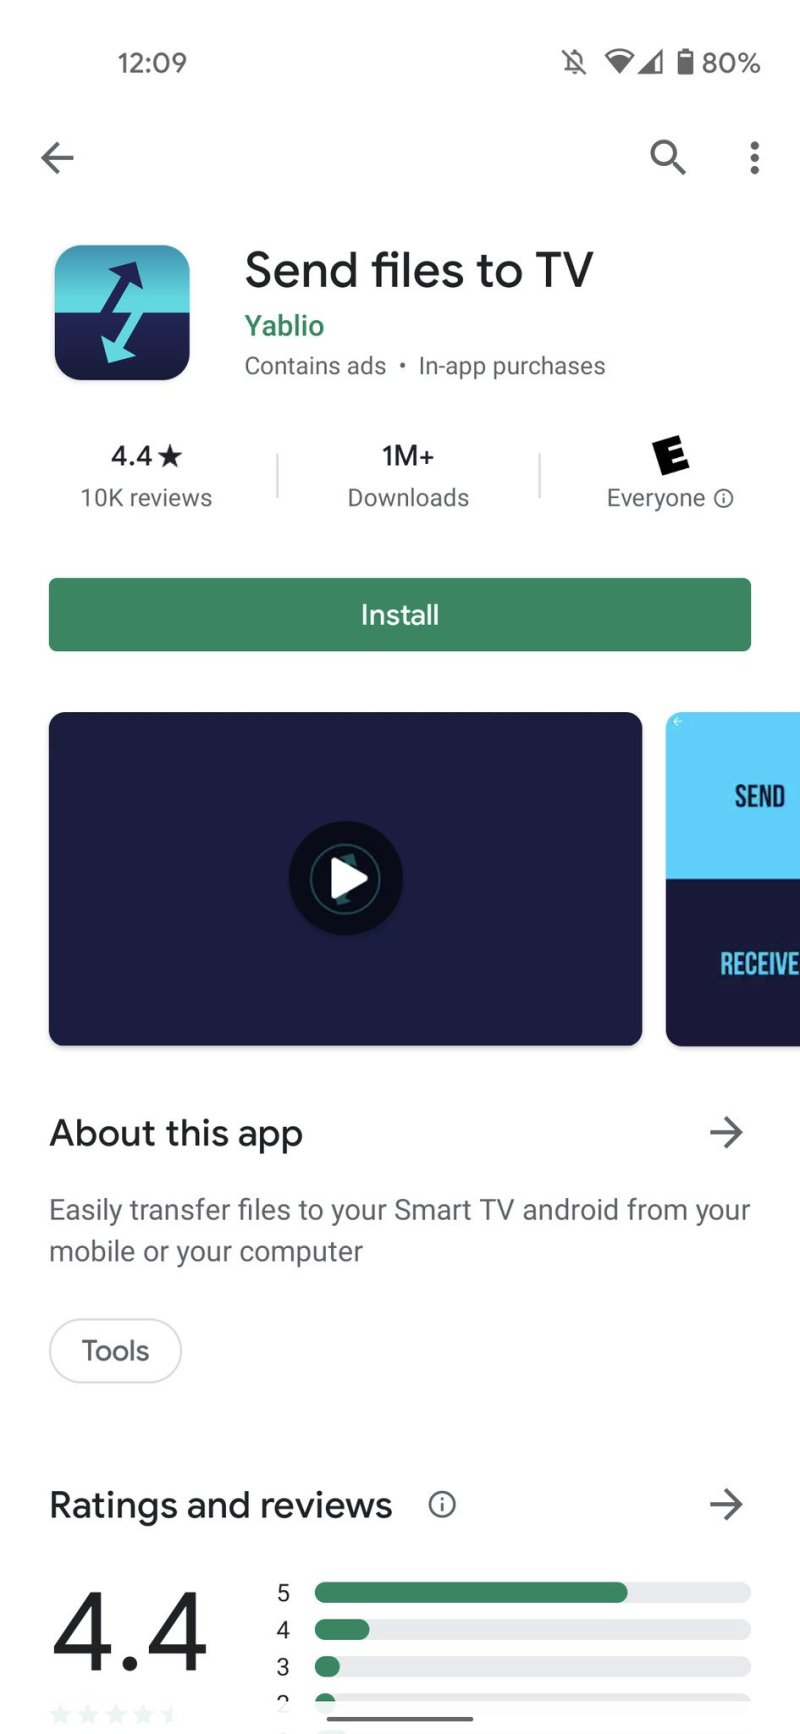 Send files to the TV app in the Play Store